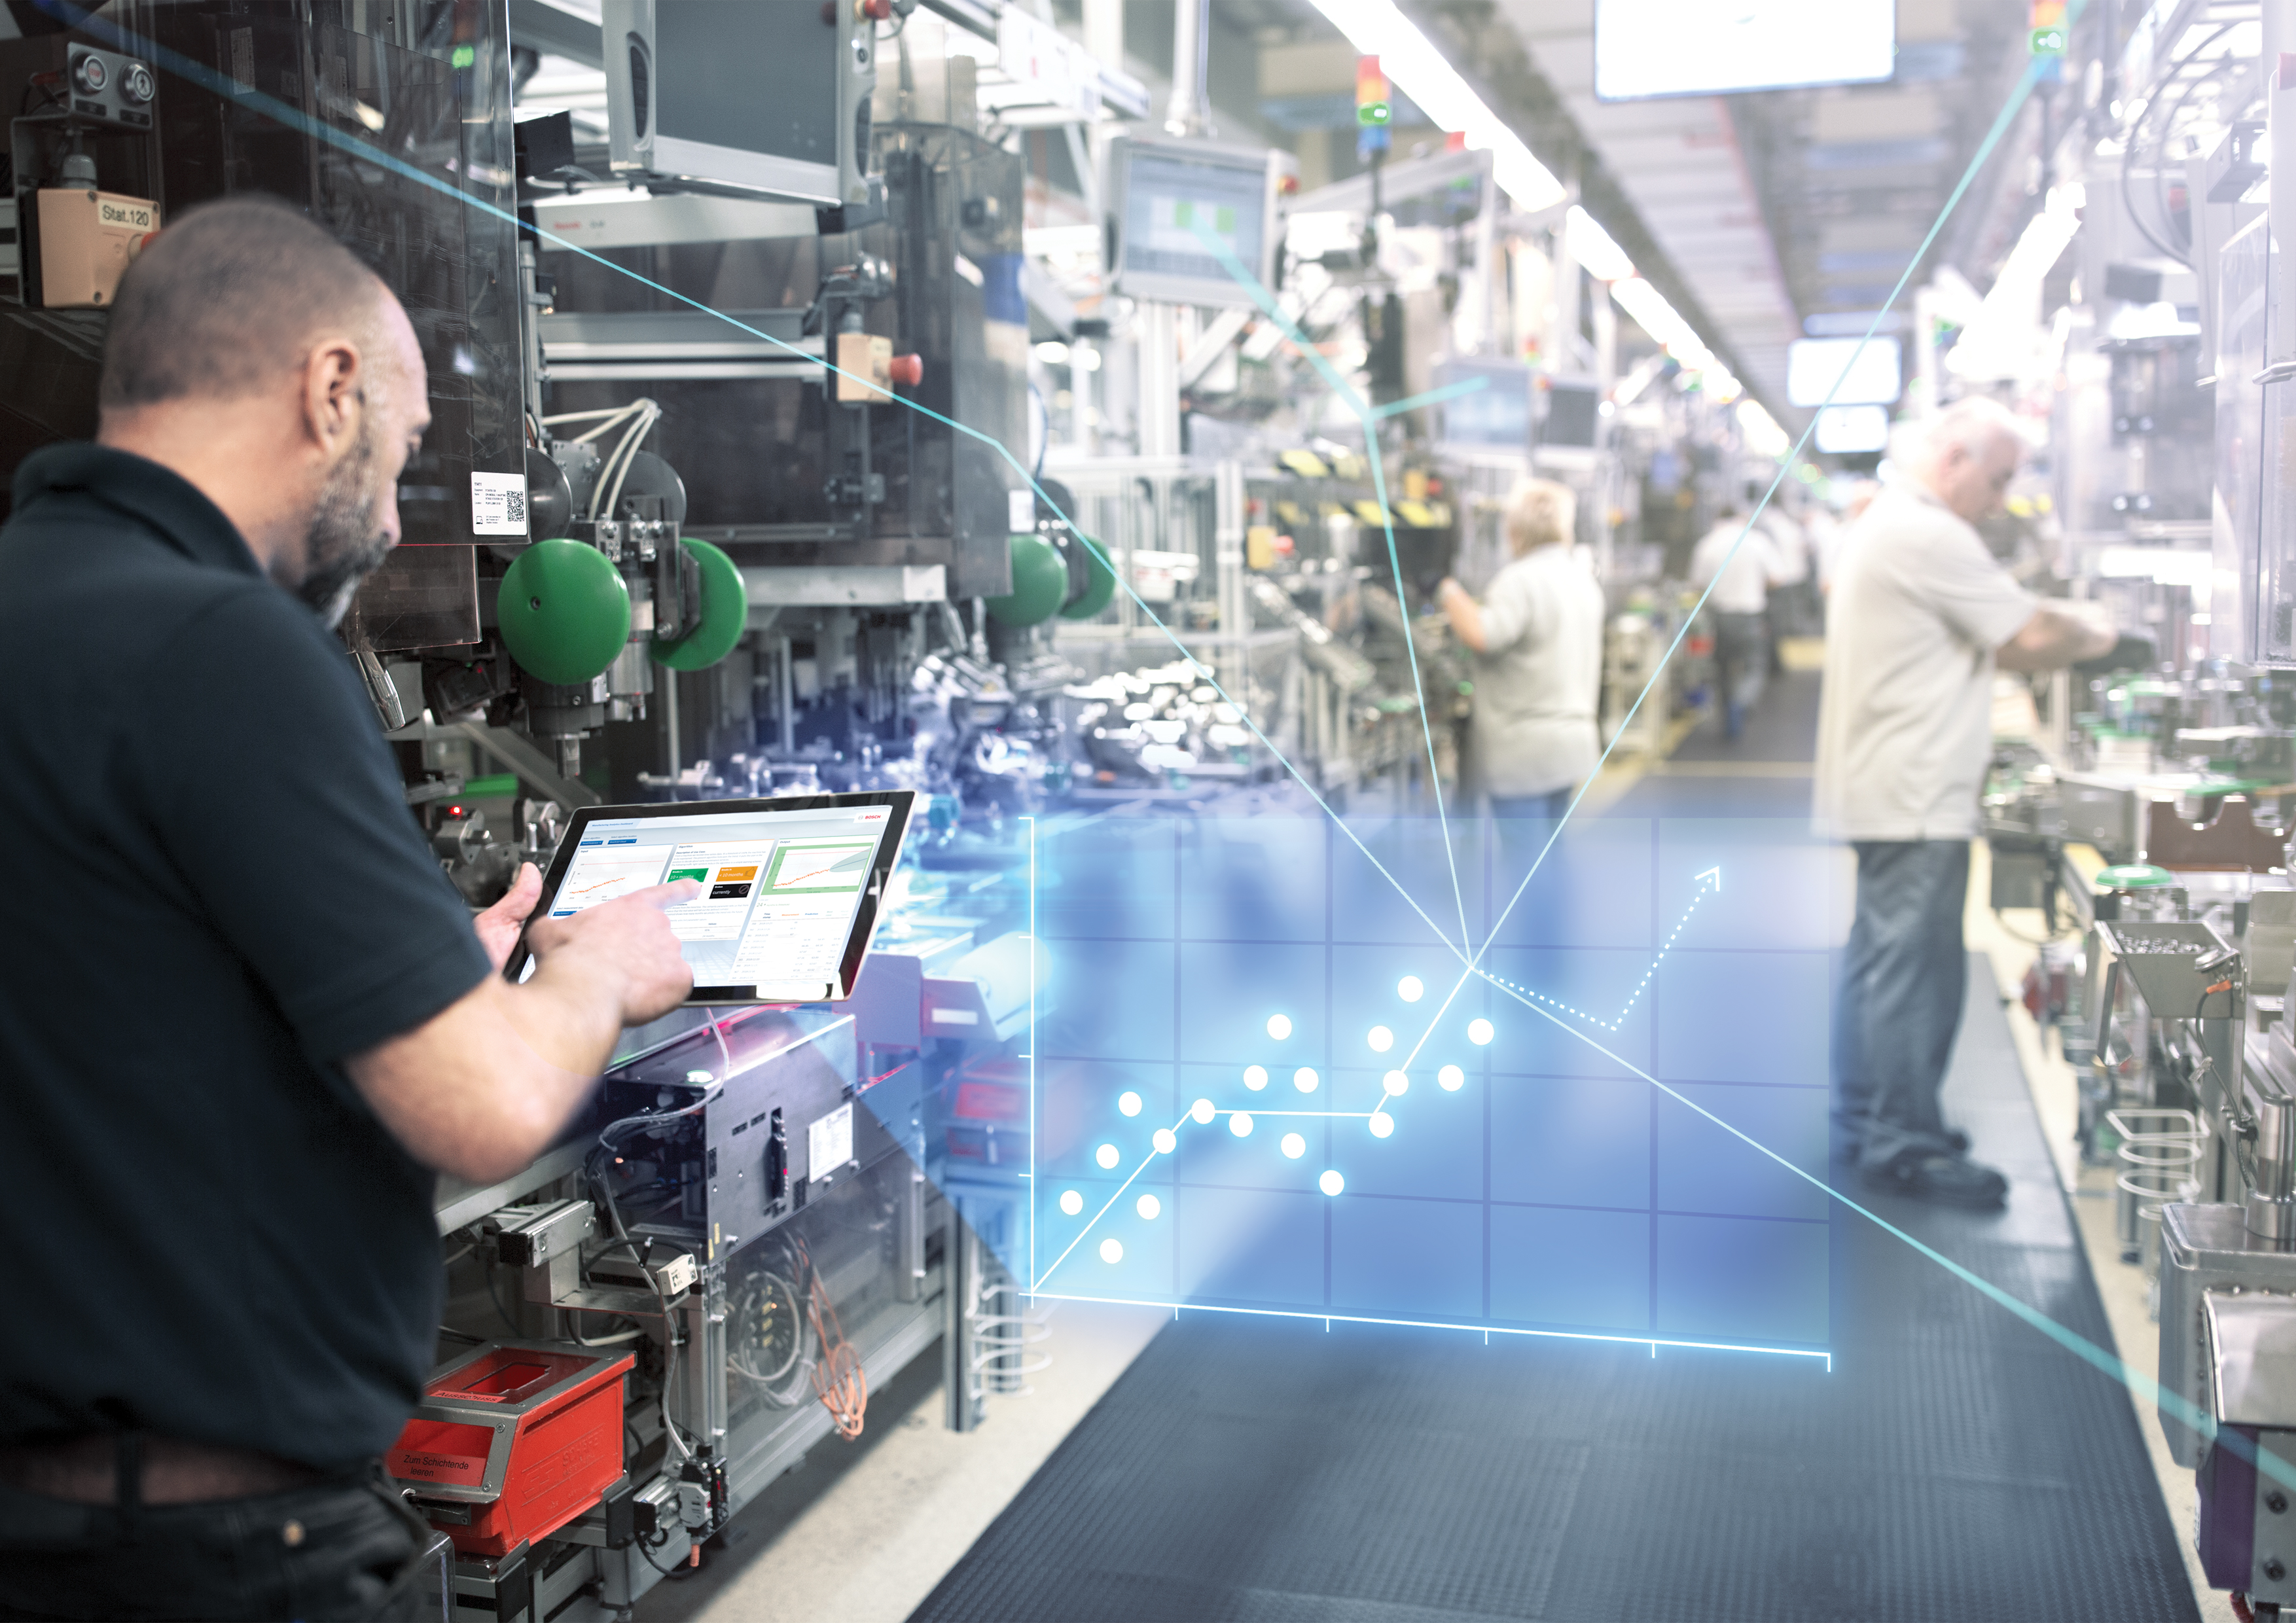 Combining AI and IoT: a market worth billions for Bosch